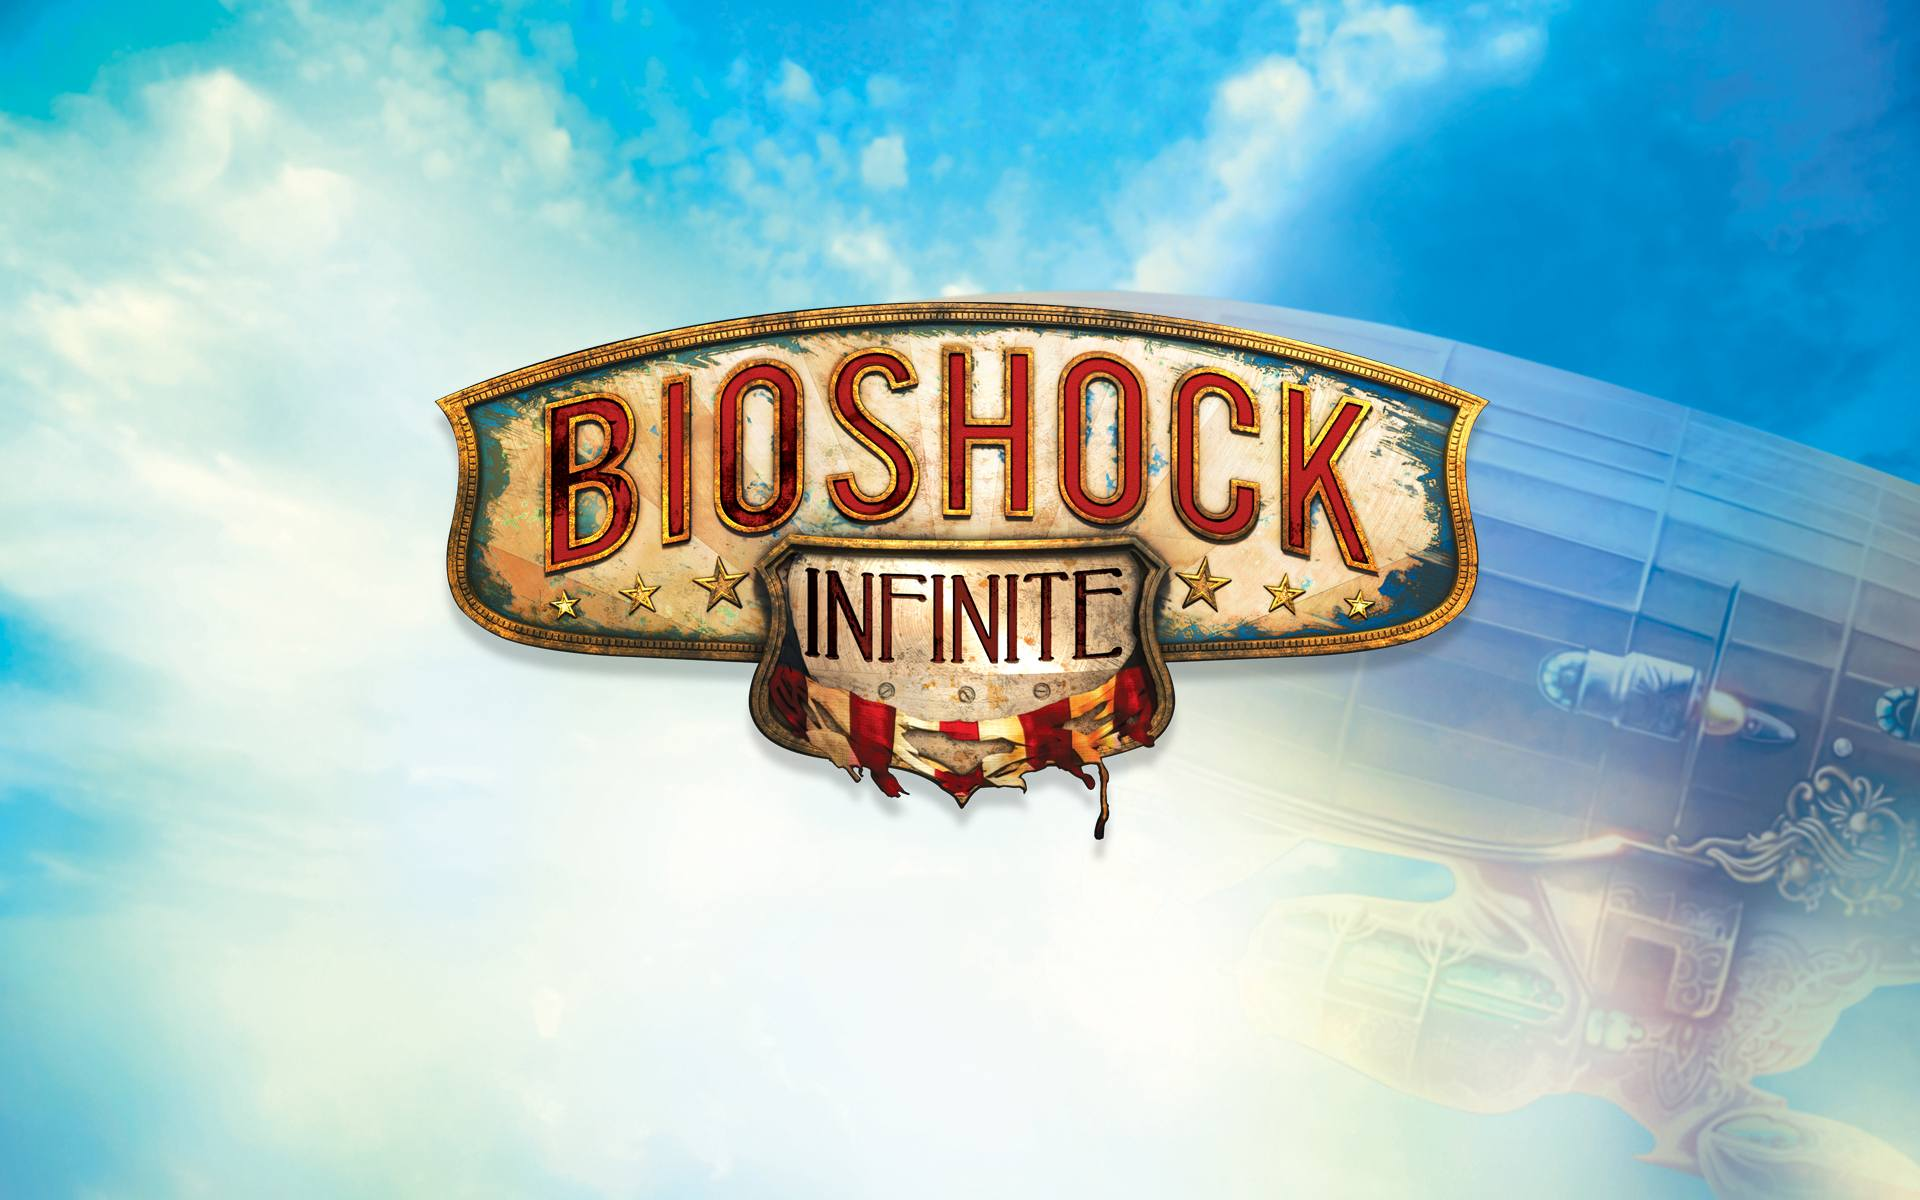 BioshockInfiniteLogo